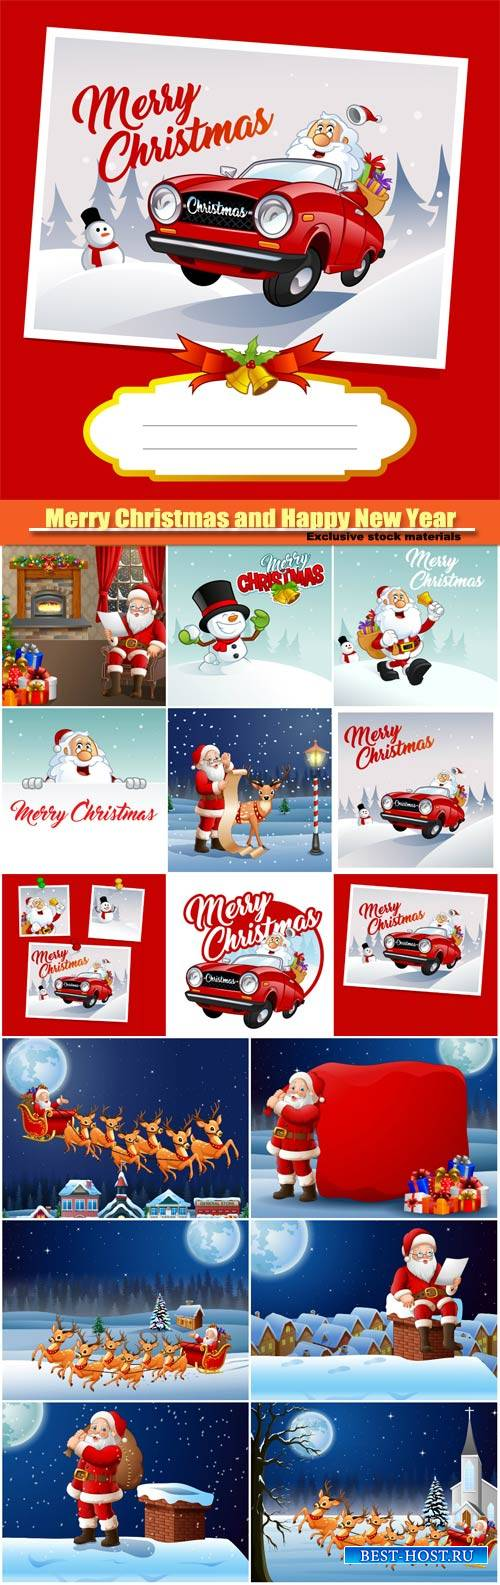 Merry Christmas and Happy New Year vector, Santa Clause and snowman